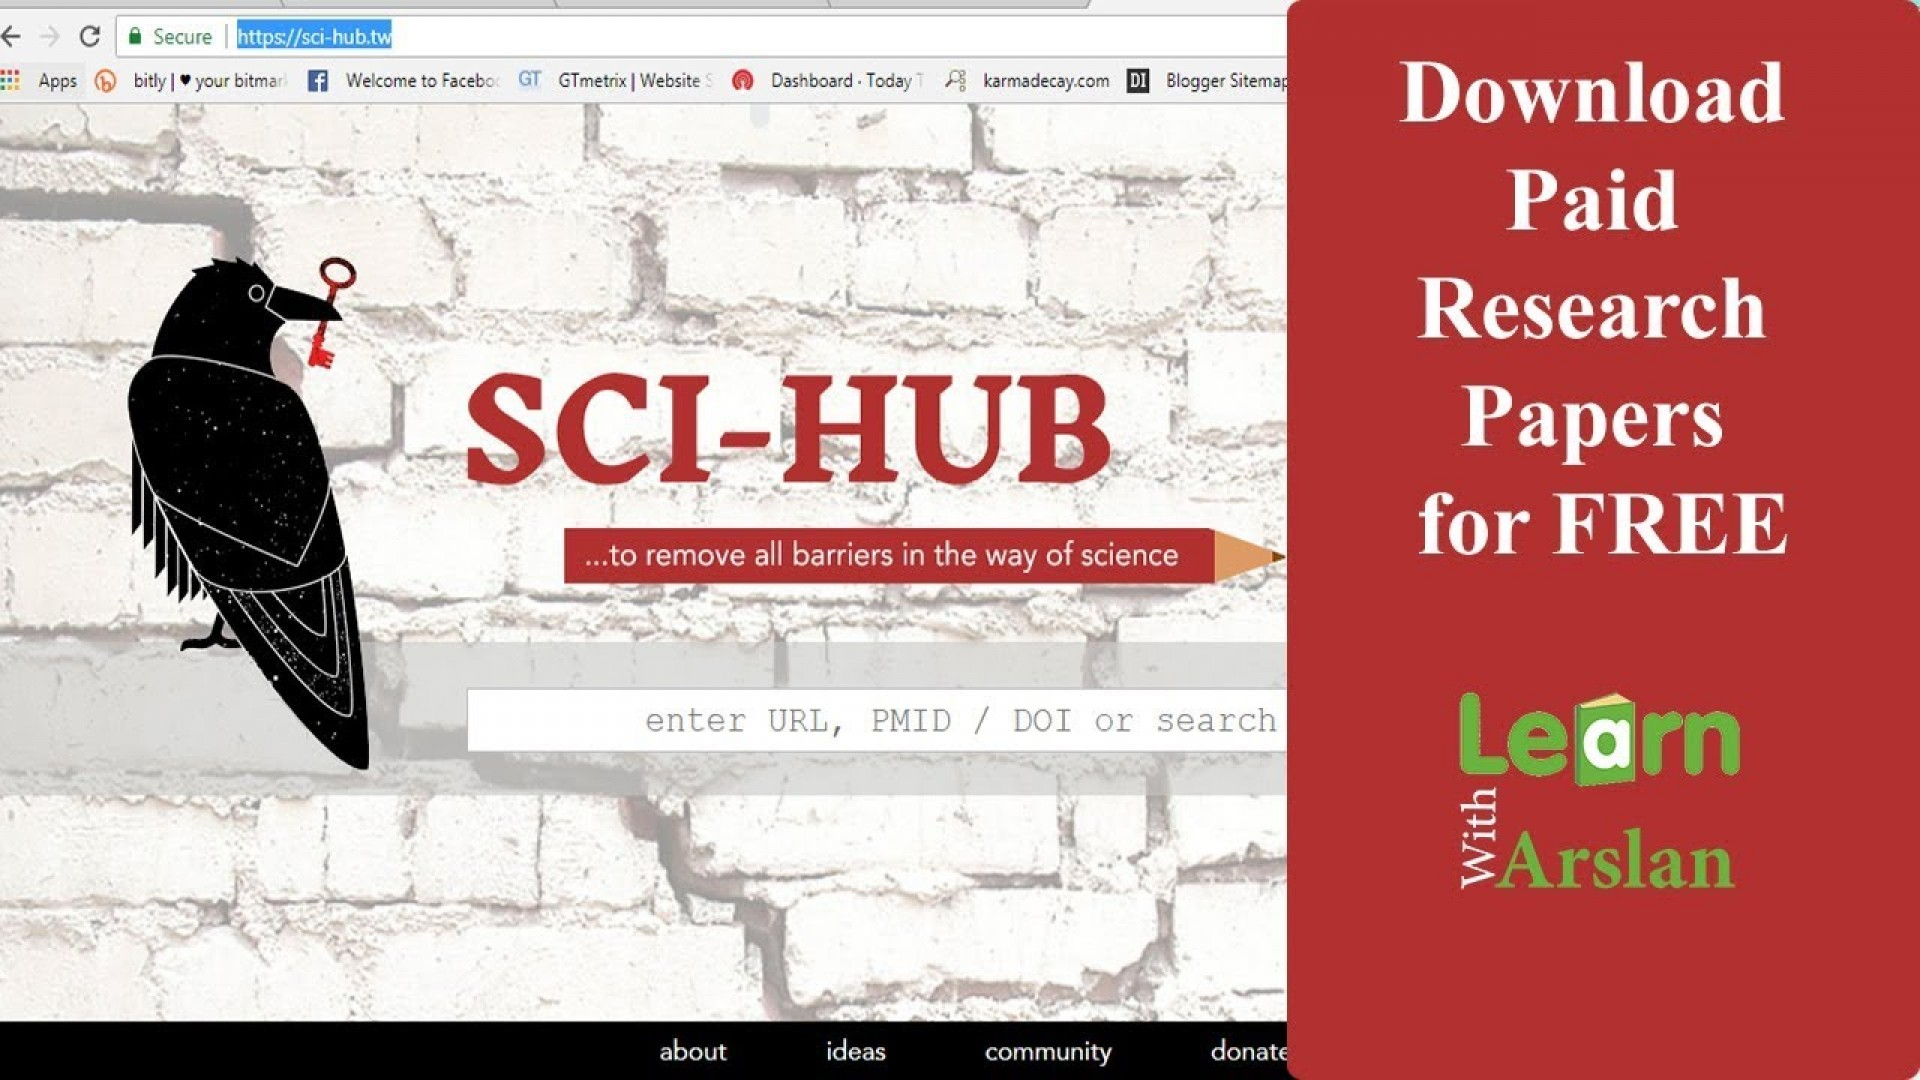 012 Research Paper Maxresdefault Best Site To Download Papers Unbelievable Free How From Ieee Google Scholar 1920